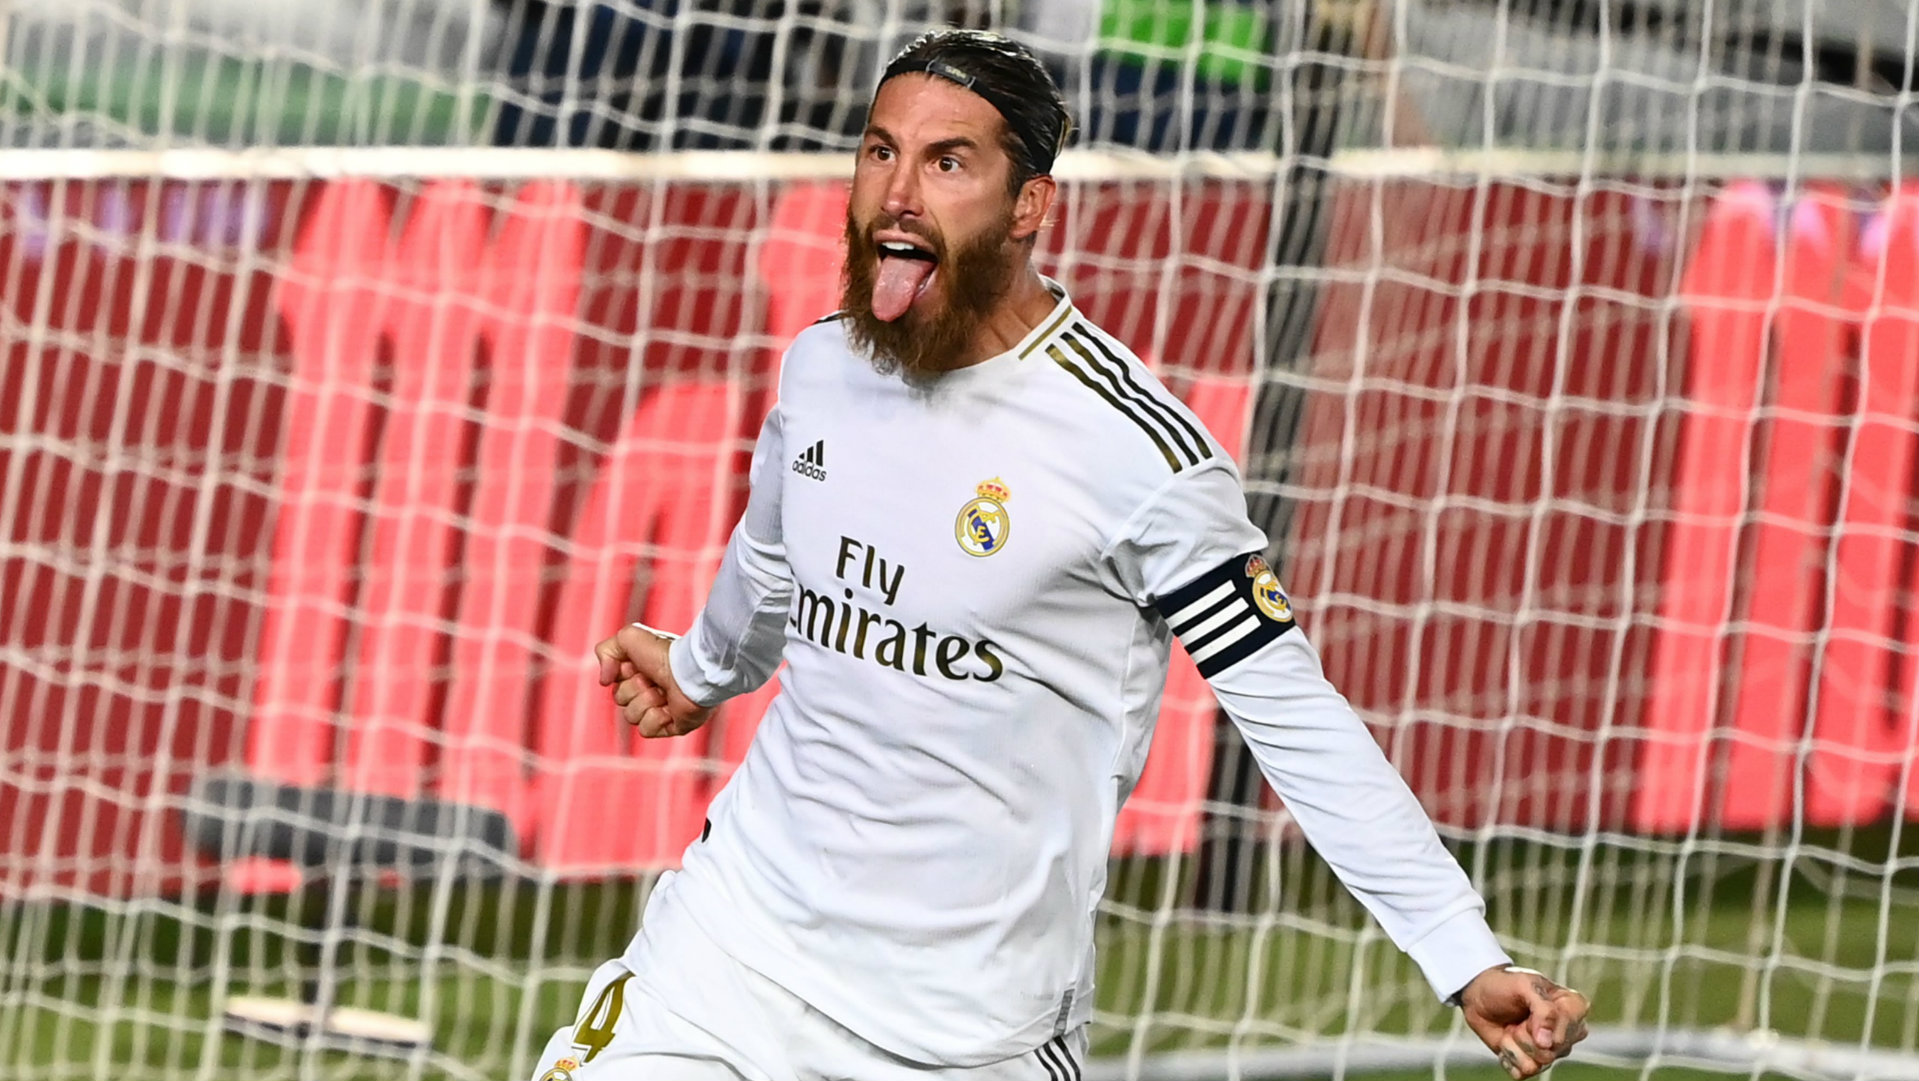 Bilbao-Madrid (0-1) - Ramos et le Real augmentent la pression